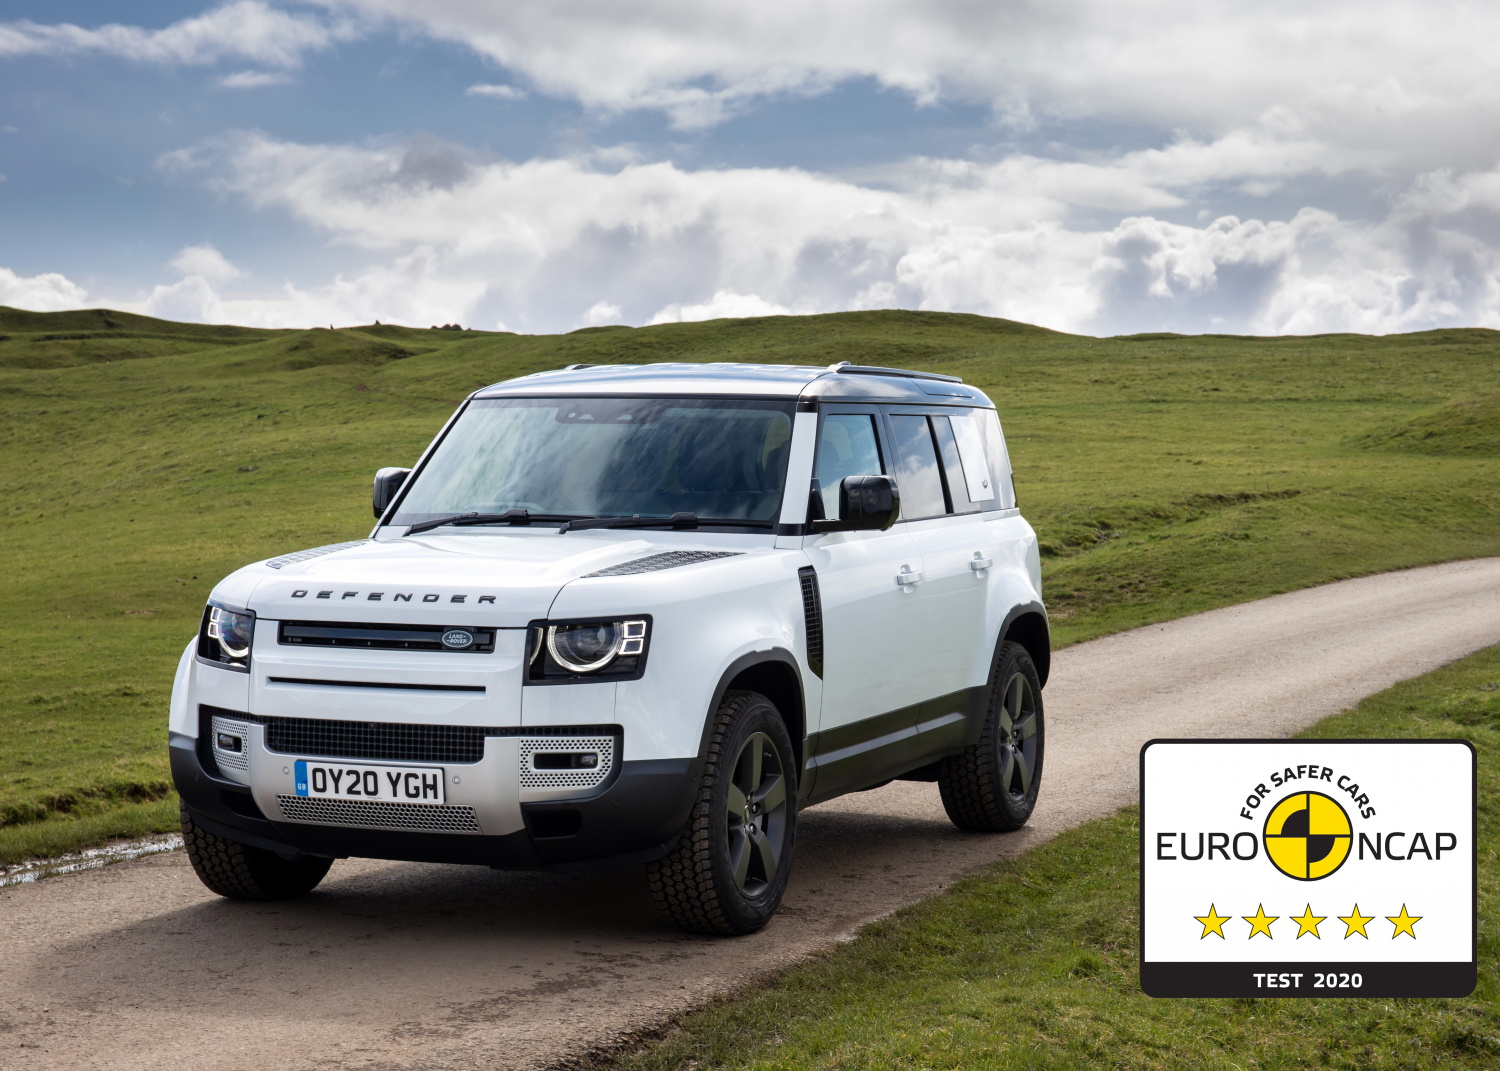 Five-star Euro Ncap Safety Rating for Award-winning New Defender 110 - Image 1